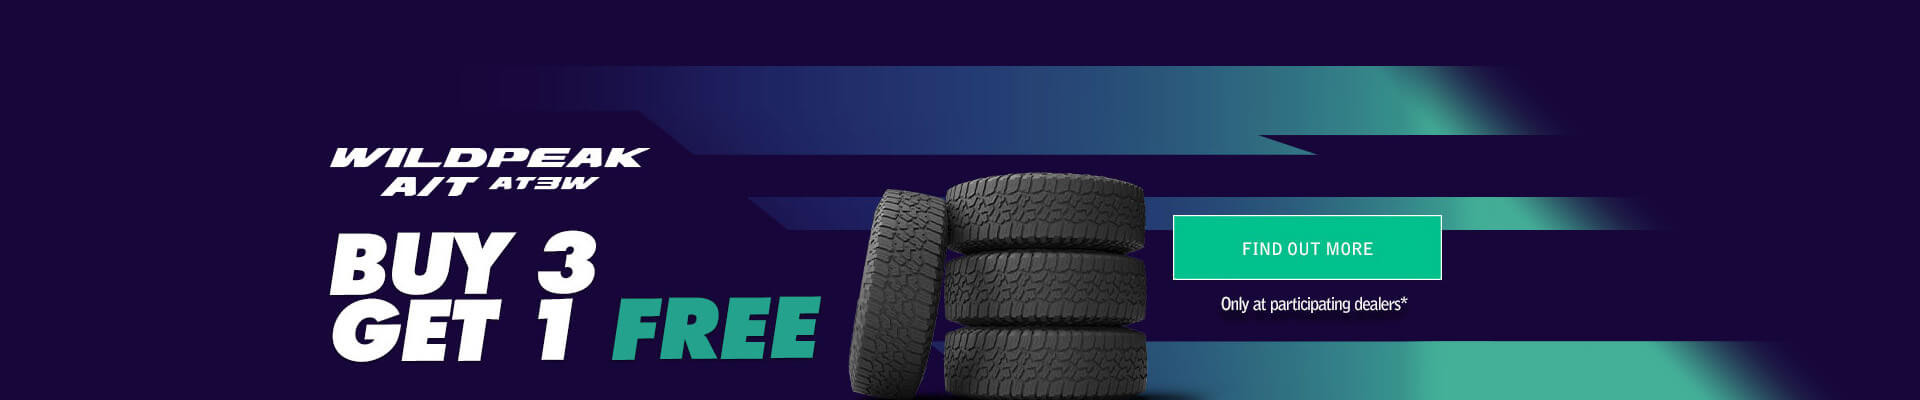 Buy 3 Get 1 Free Wildpeak AT3W Falken Tyres